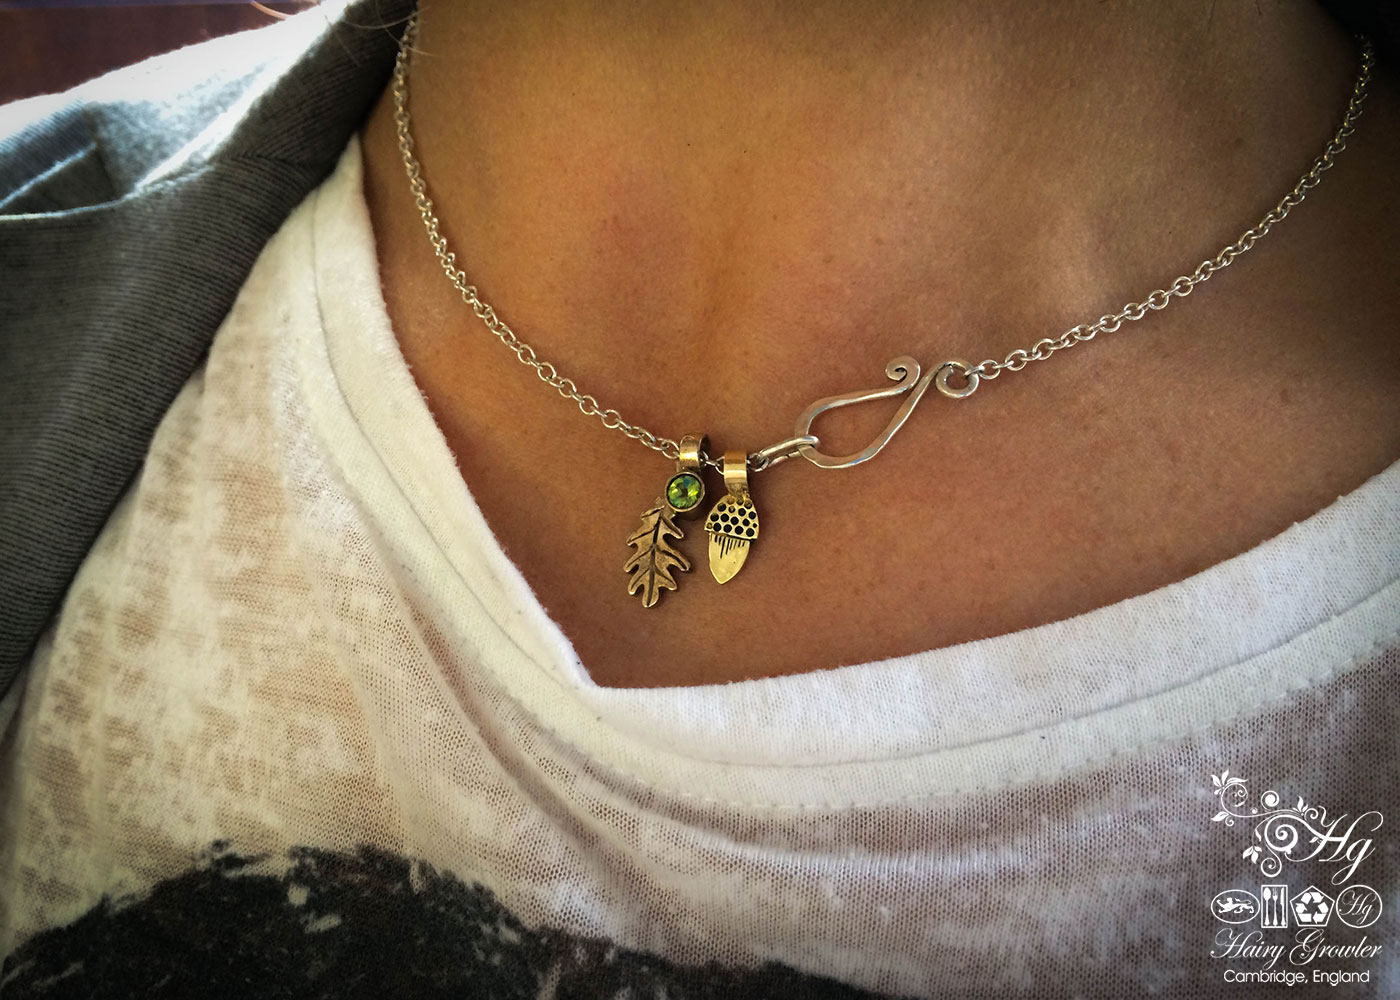 handcrafted bronze and peridot and garnet oak leaf charm for a tree sculpture, necklace or bracelet